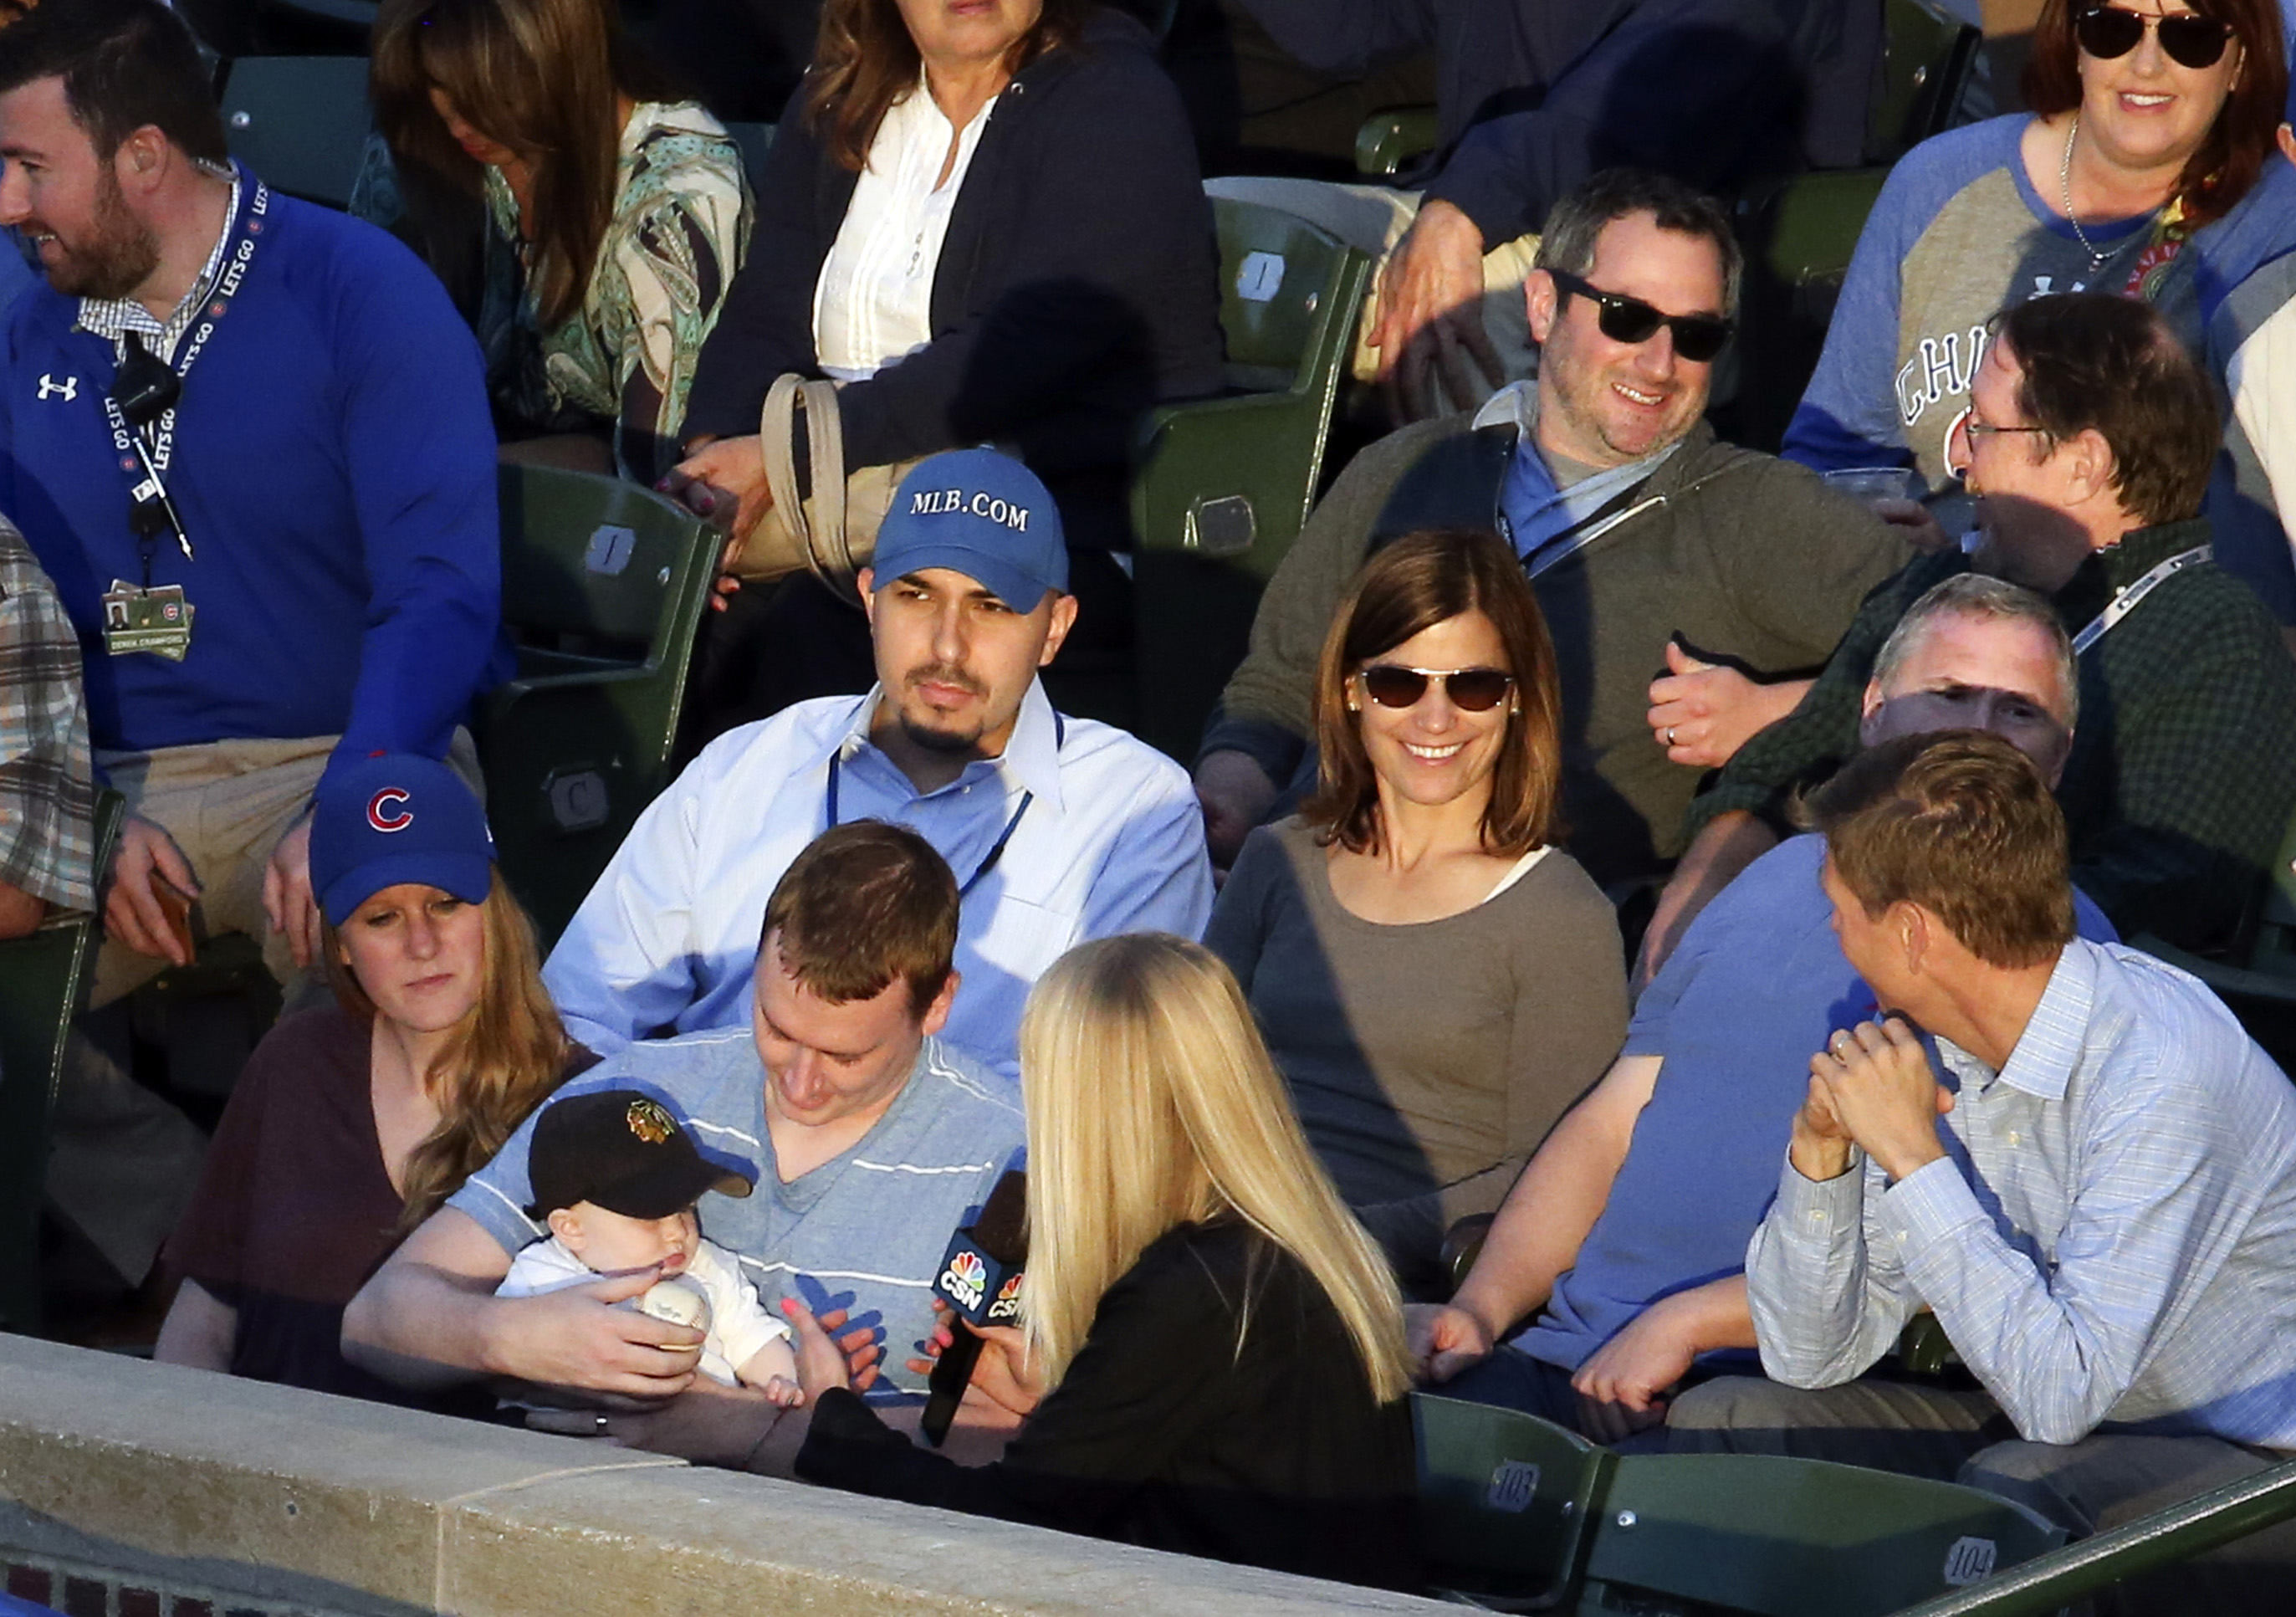 In this photo taken Tuesday, June 23, 2015, Keith Hartley, second left,is interviewed by a television reporter after he caught a foul ball while bottle-feeding his 7-month-old son during a baseball game between the Chicago Cubs and the Los Angeles Dodgers